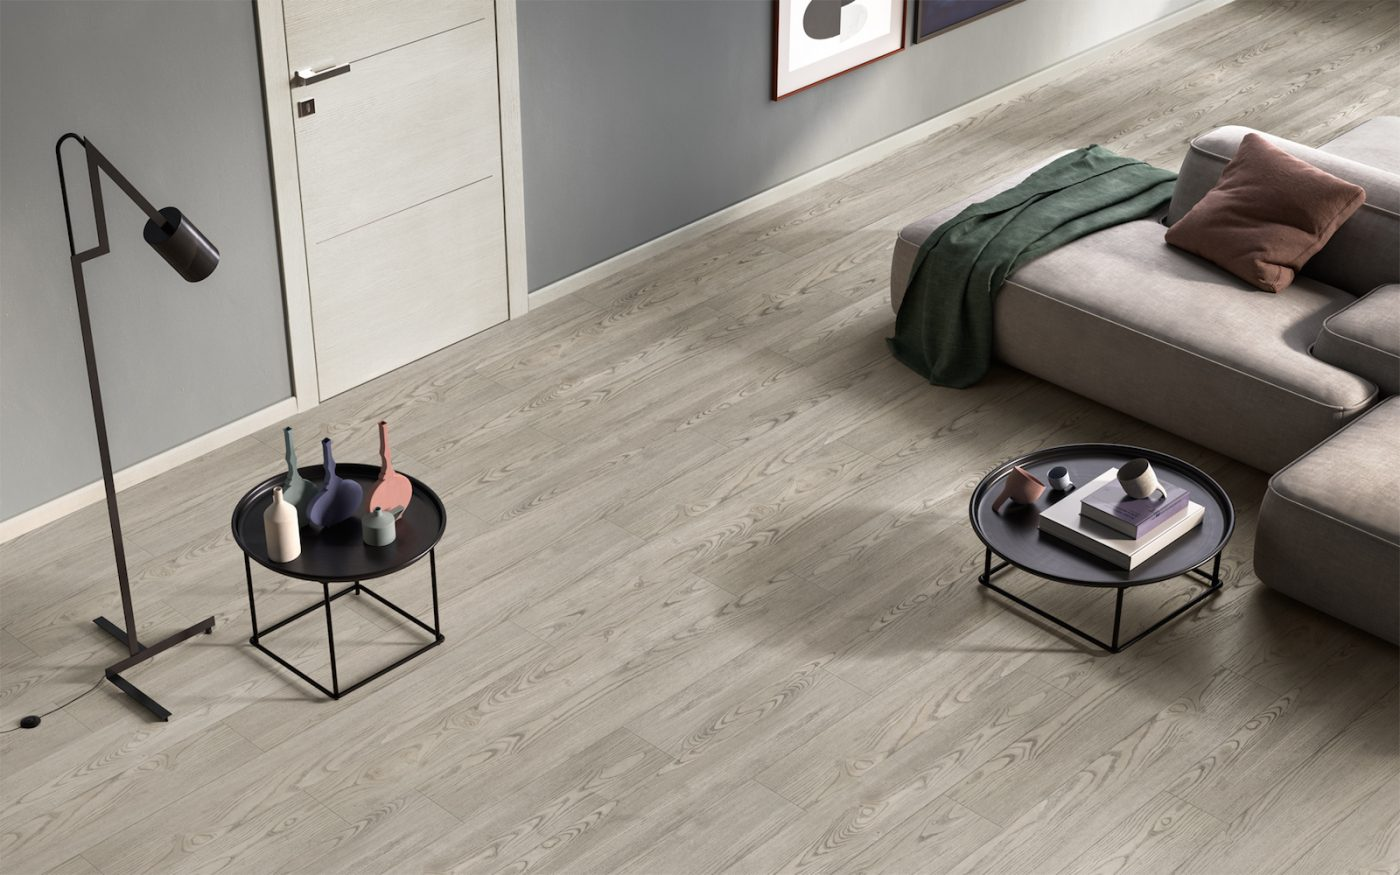 Pavimento rovere color fumo e porta No Limits color ghiaccio - Gidea